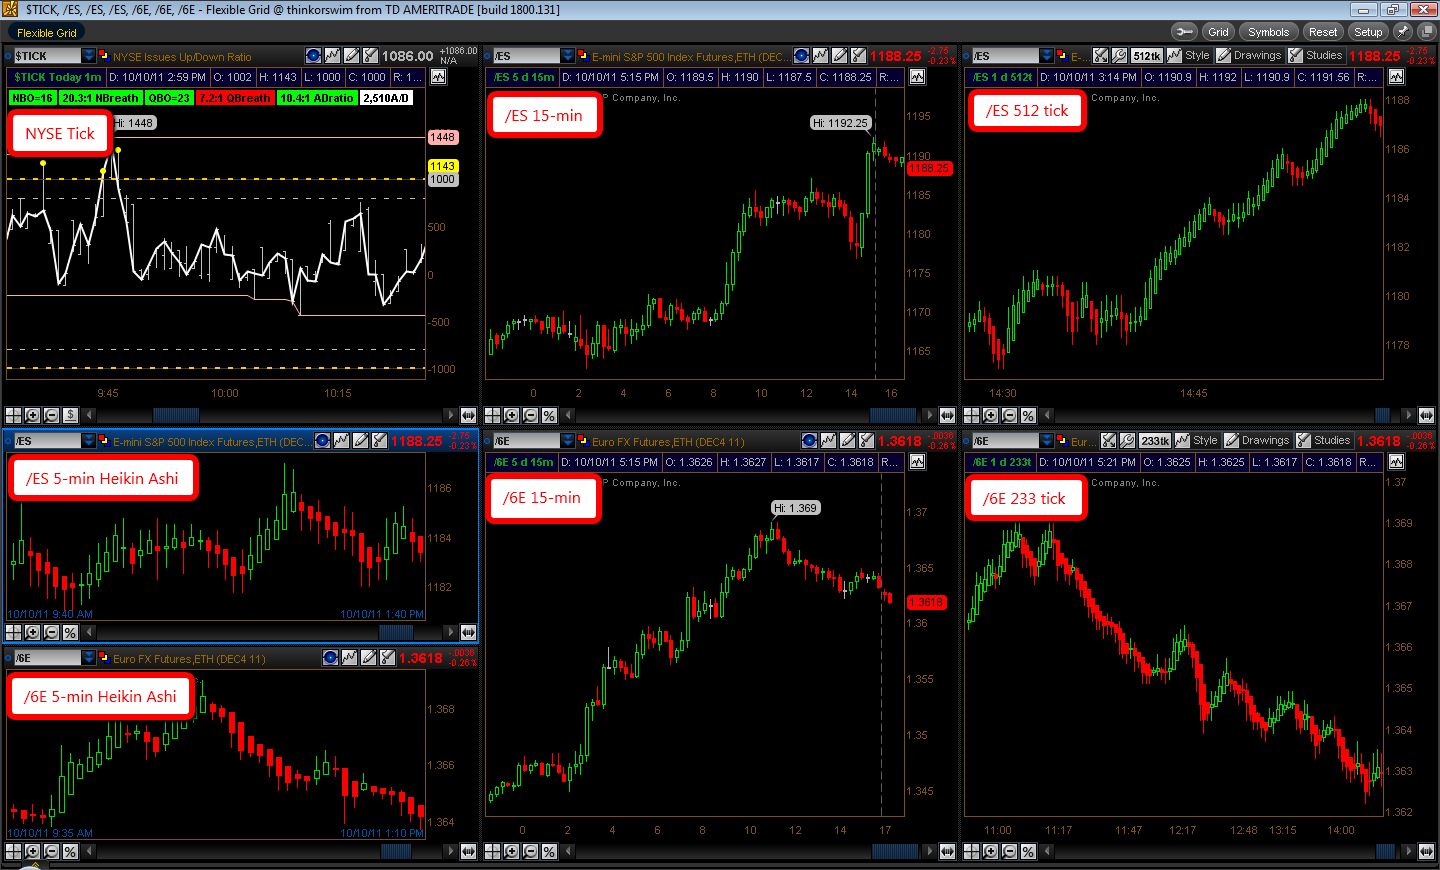 Generic trade futures & options